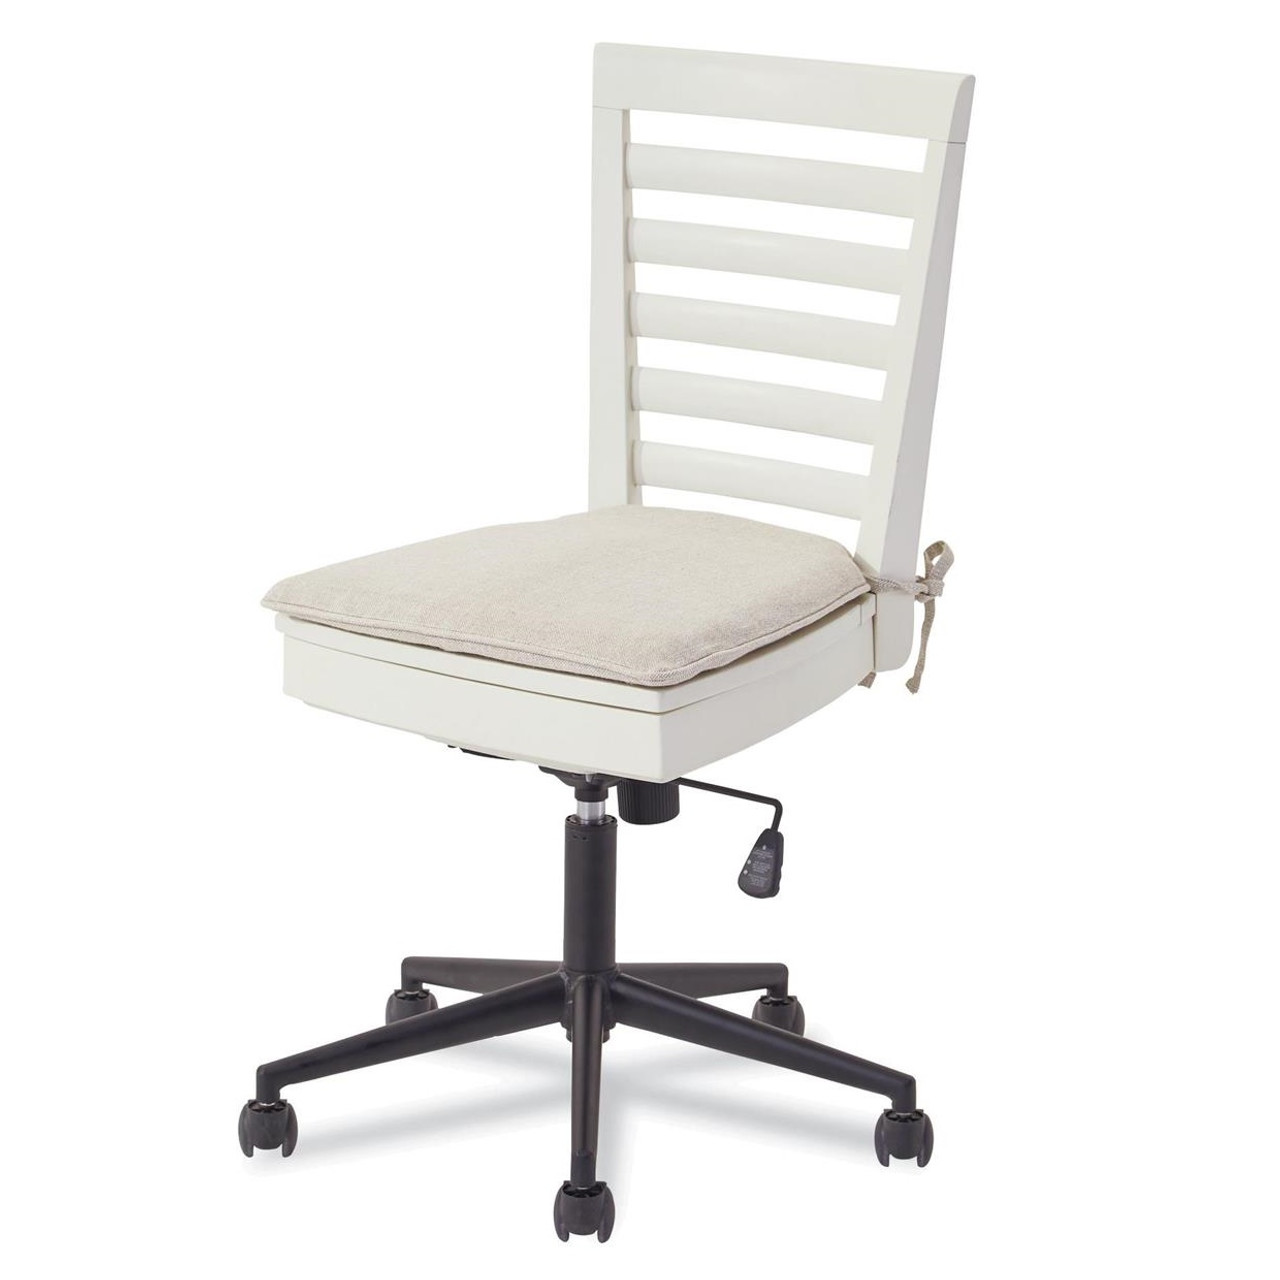 Desk Seat Myroom Modern Swivel Kids Desk Chair White